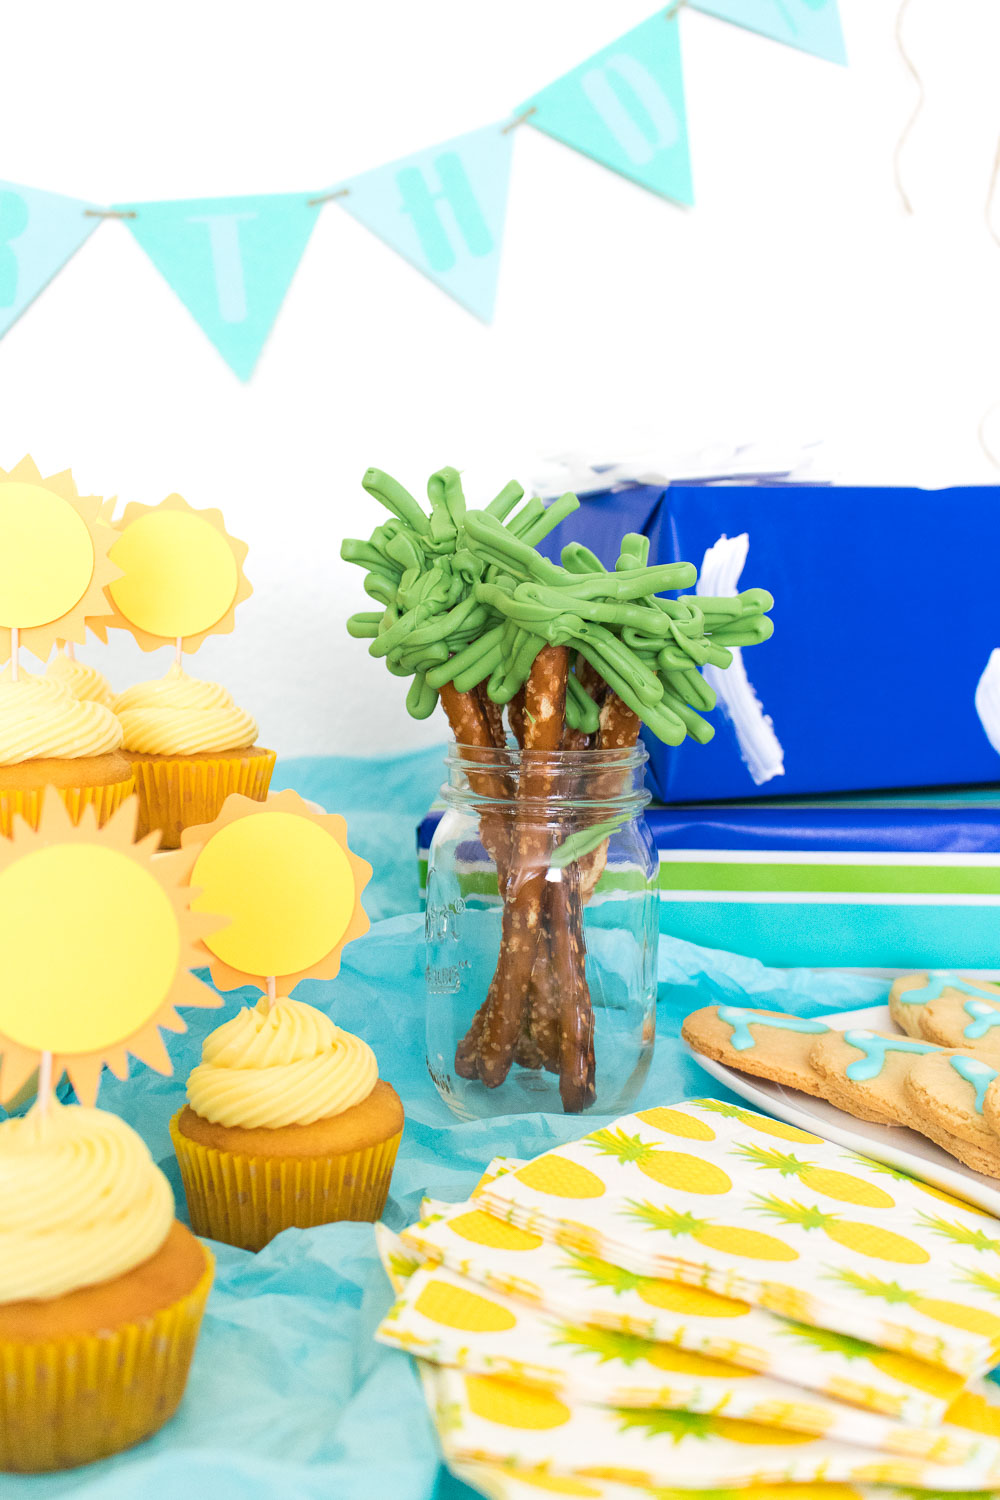 Celebrating with a Summer Dessert Table | Club Crafted